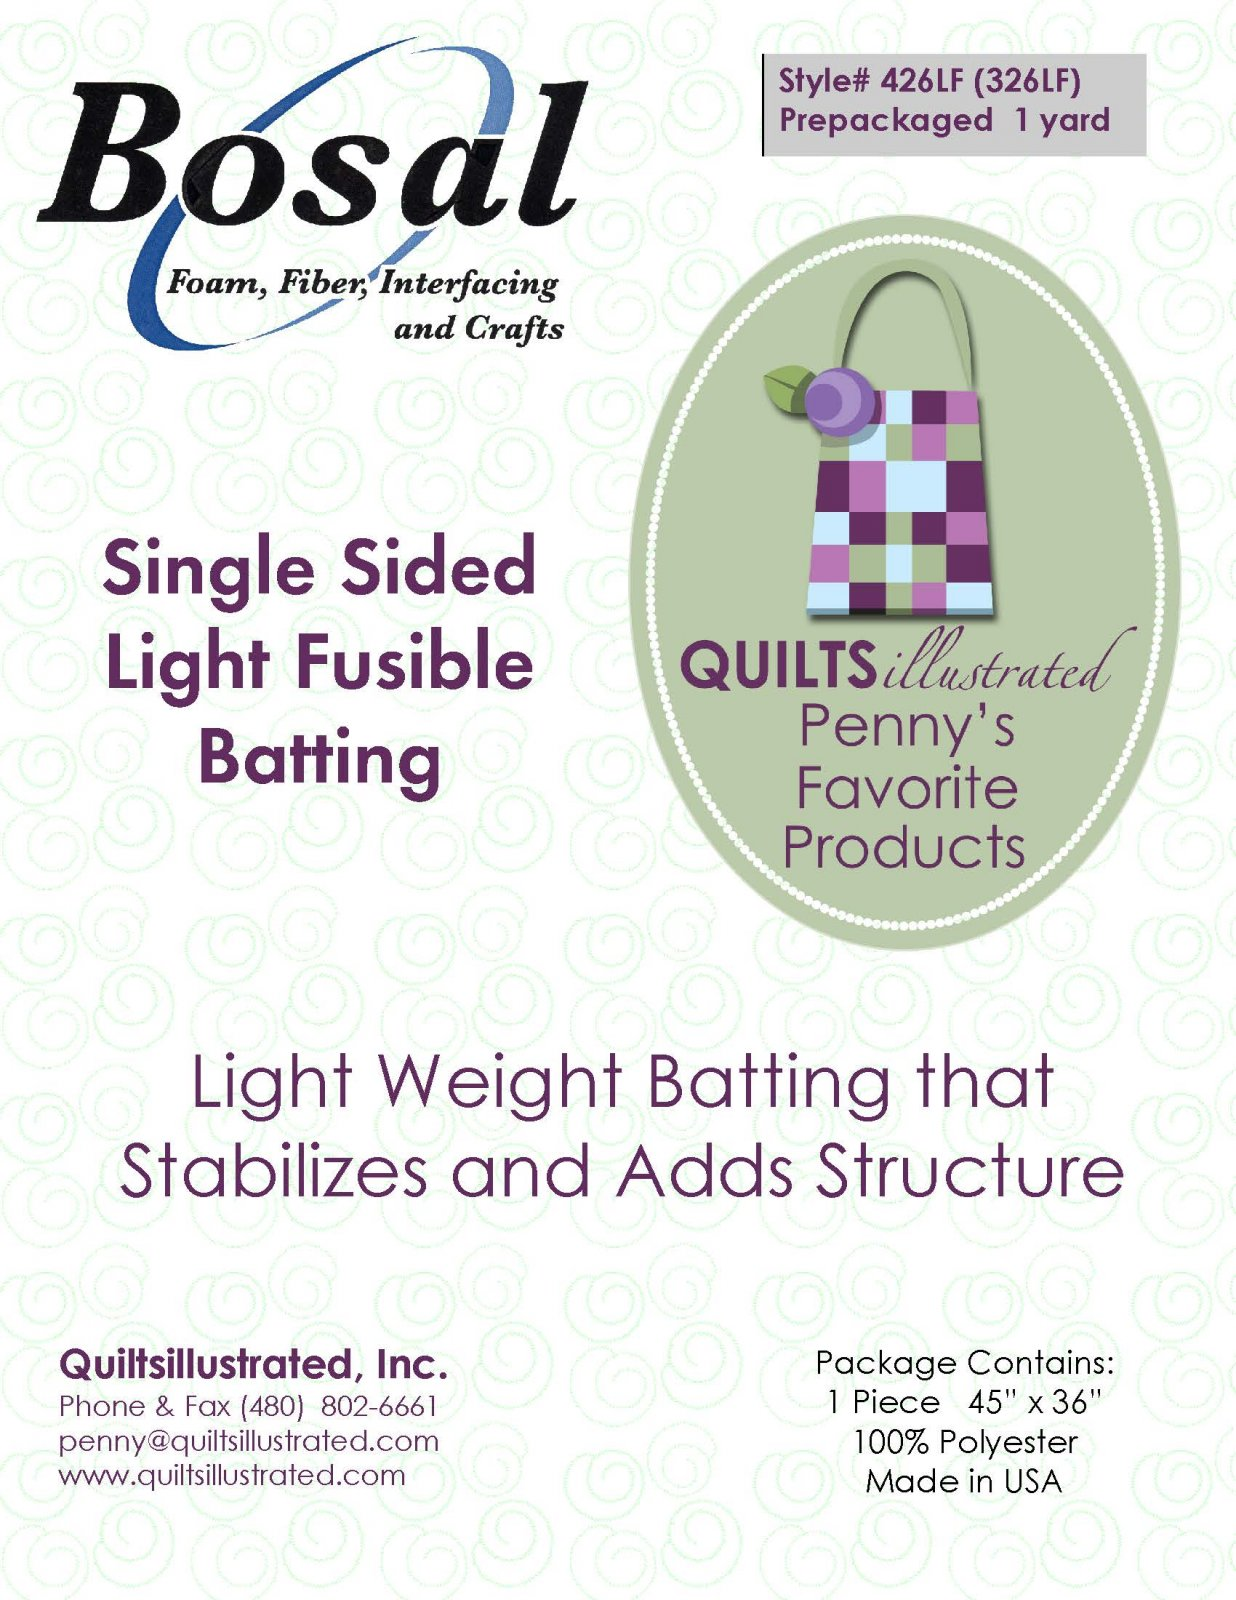 Bosal (326LF)426LF Light Fusible Batting, 1 yard package